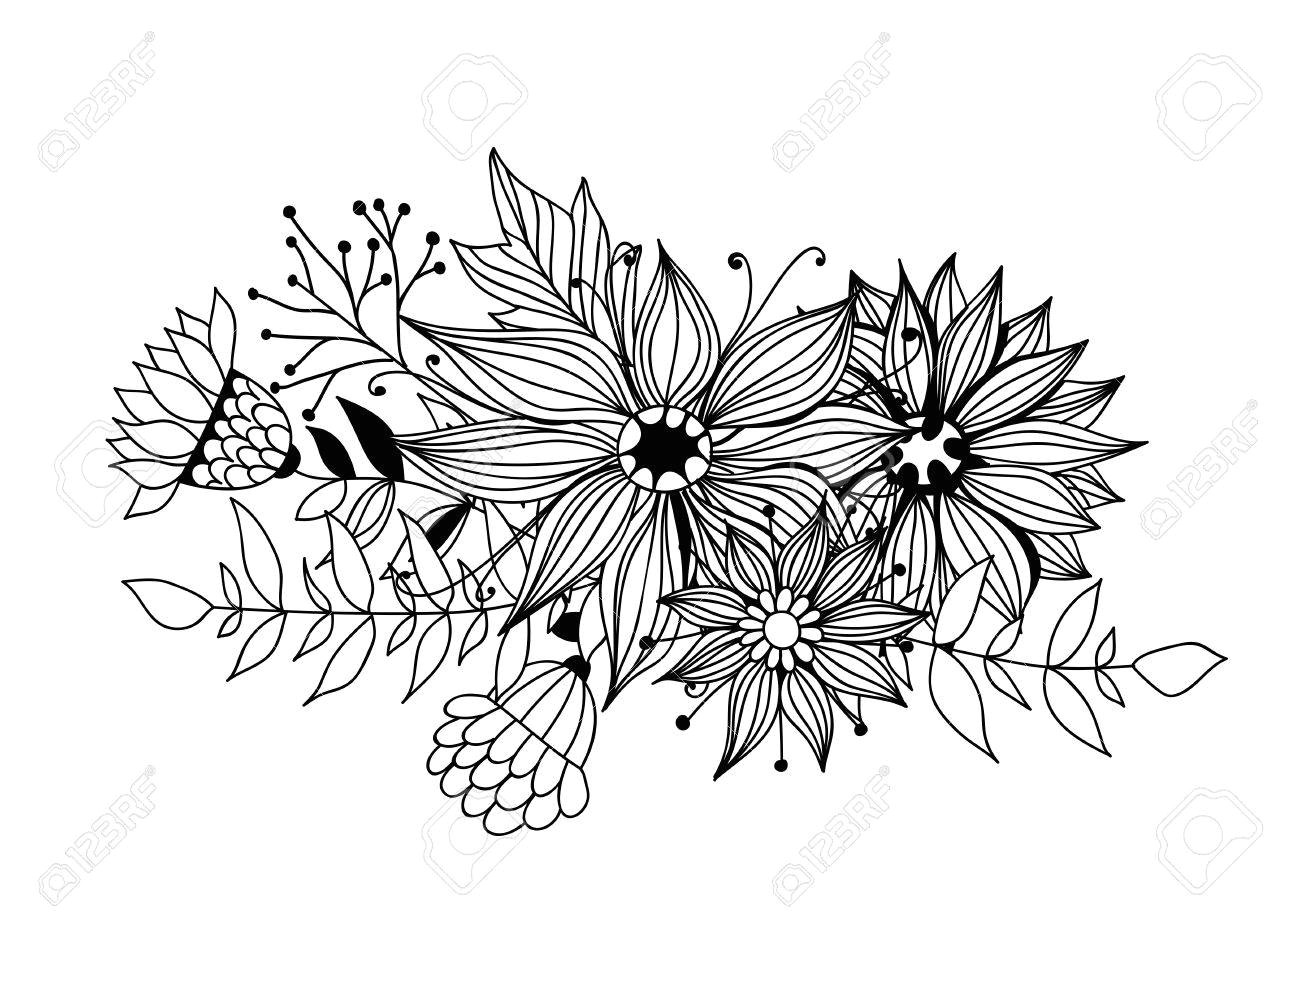 77426760 doodle bouquet od flowers and leaves on white background template design for invitations cards and m jpg